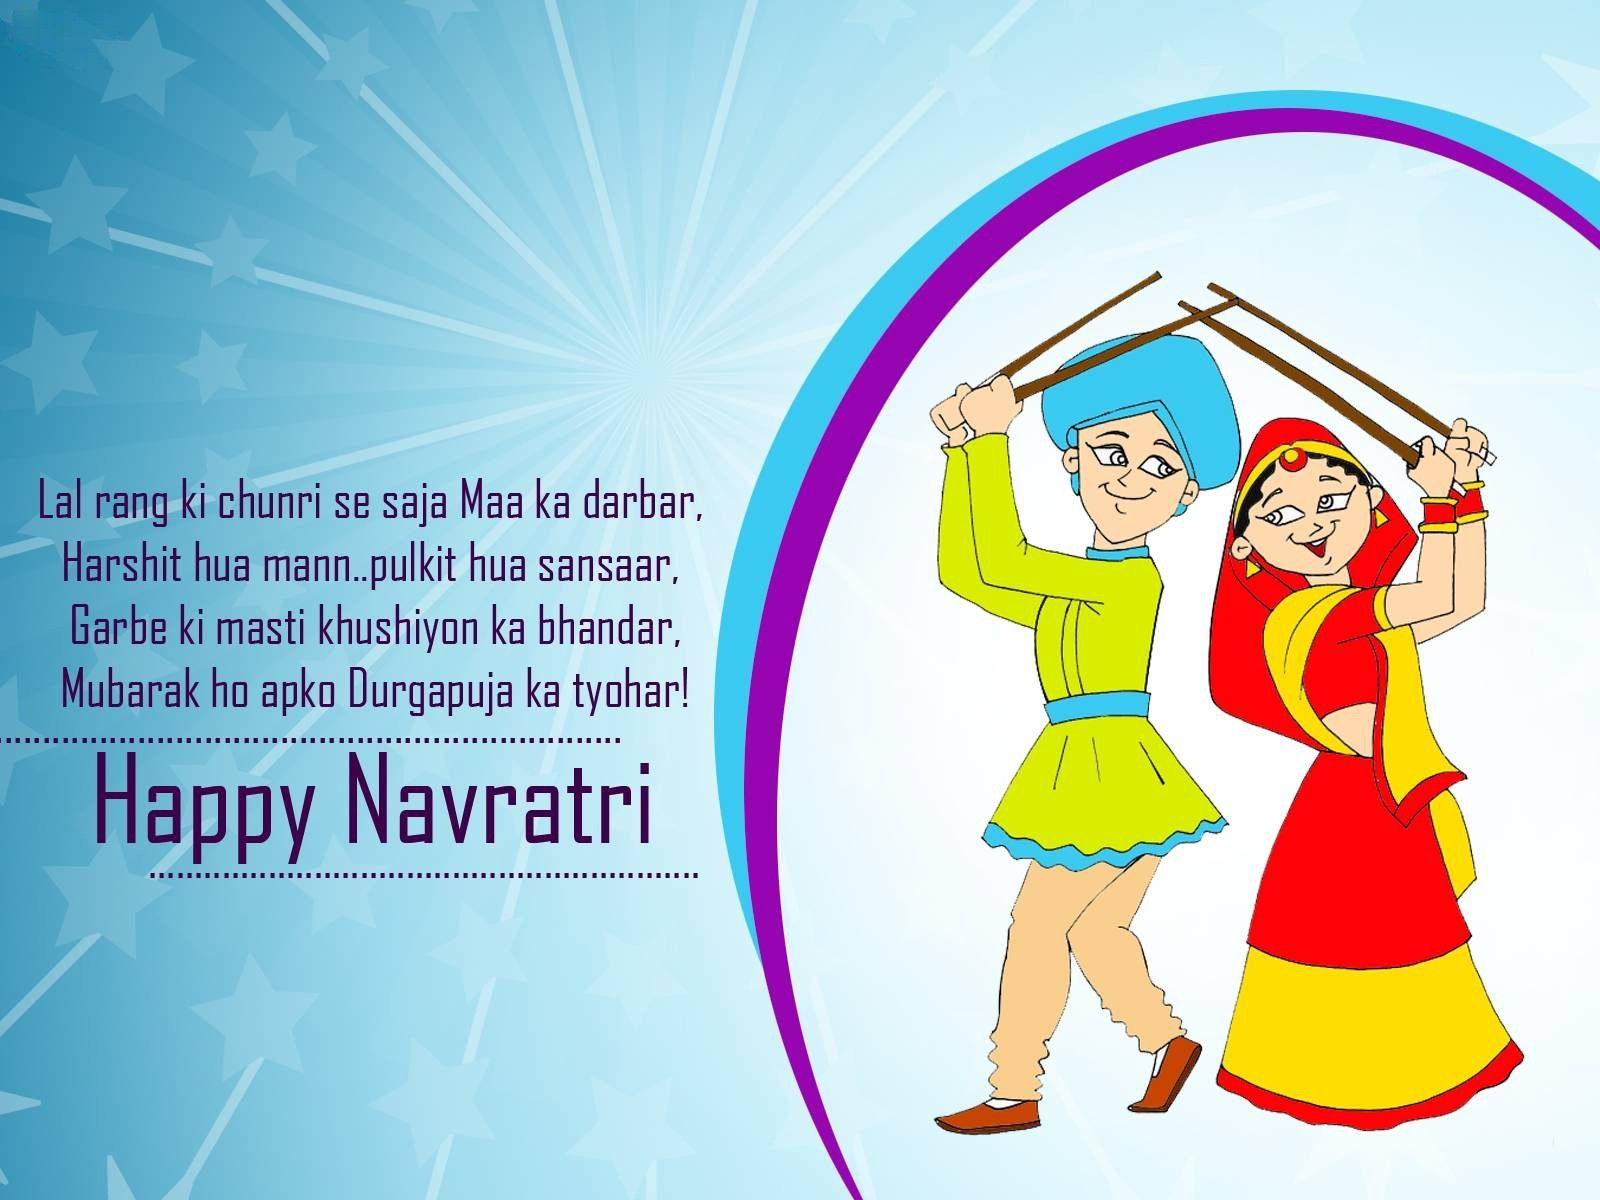 May maa durga bless you on this navratri have a peaceful life happy navratri kristyandbryce Choice Image